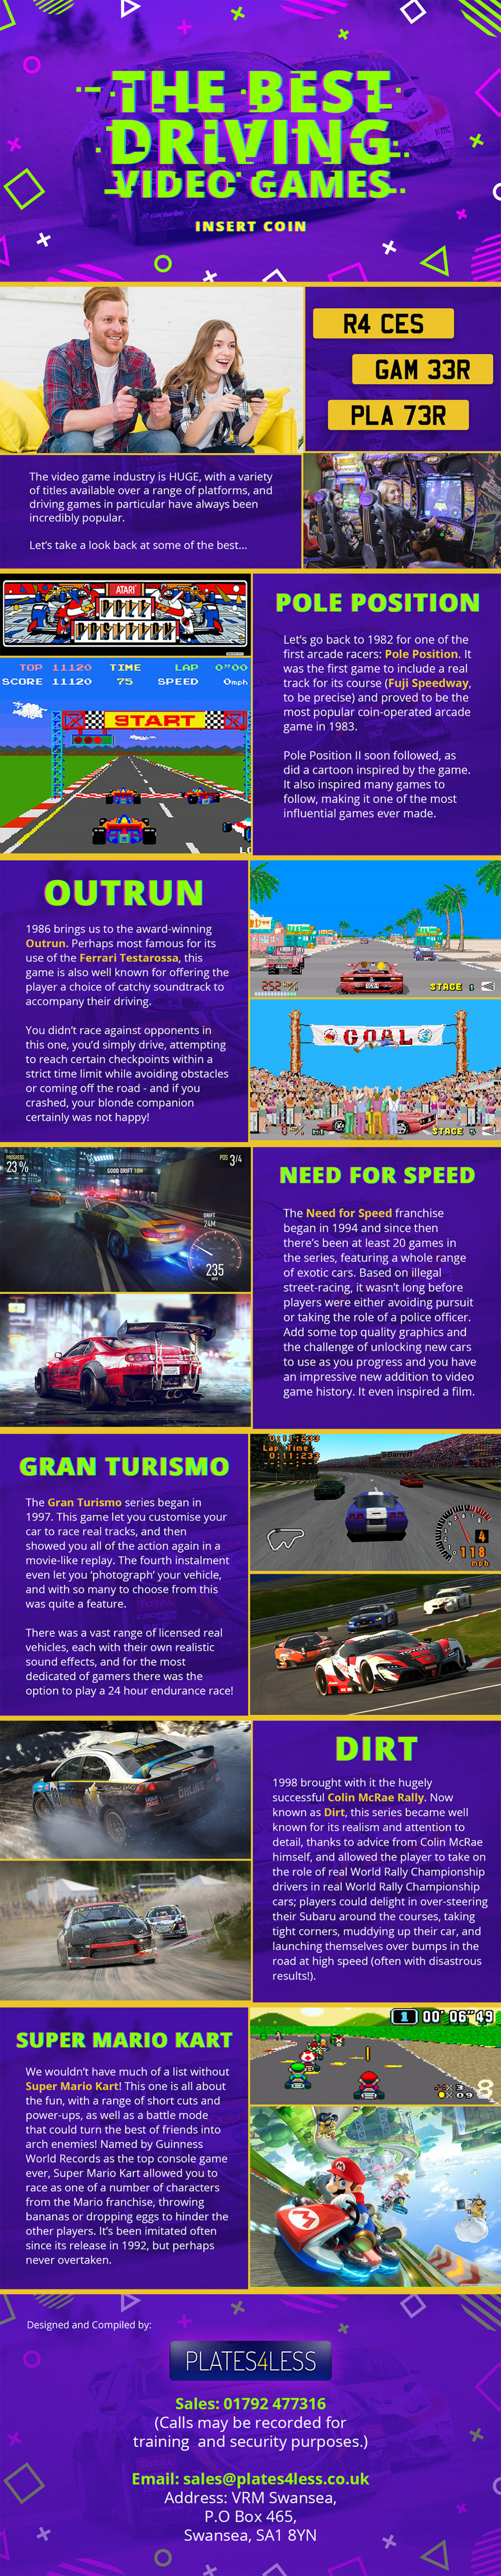 The Best Driving Video Games Infographic